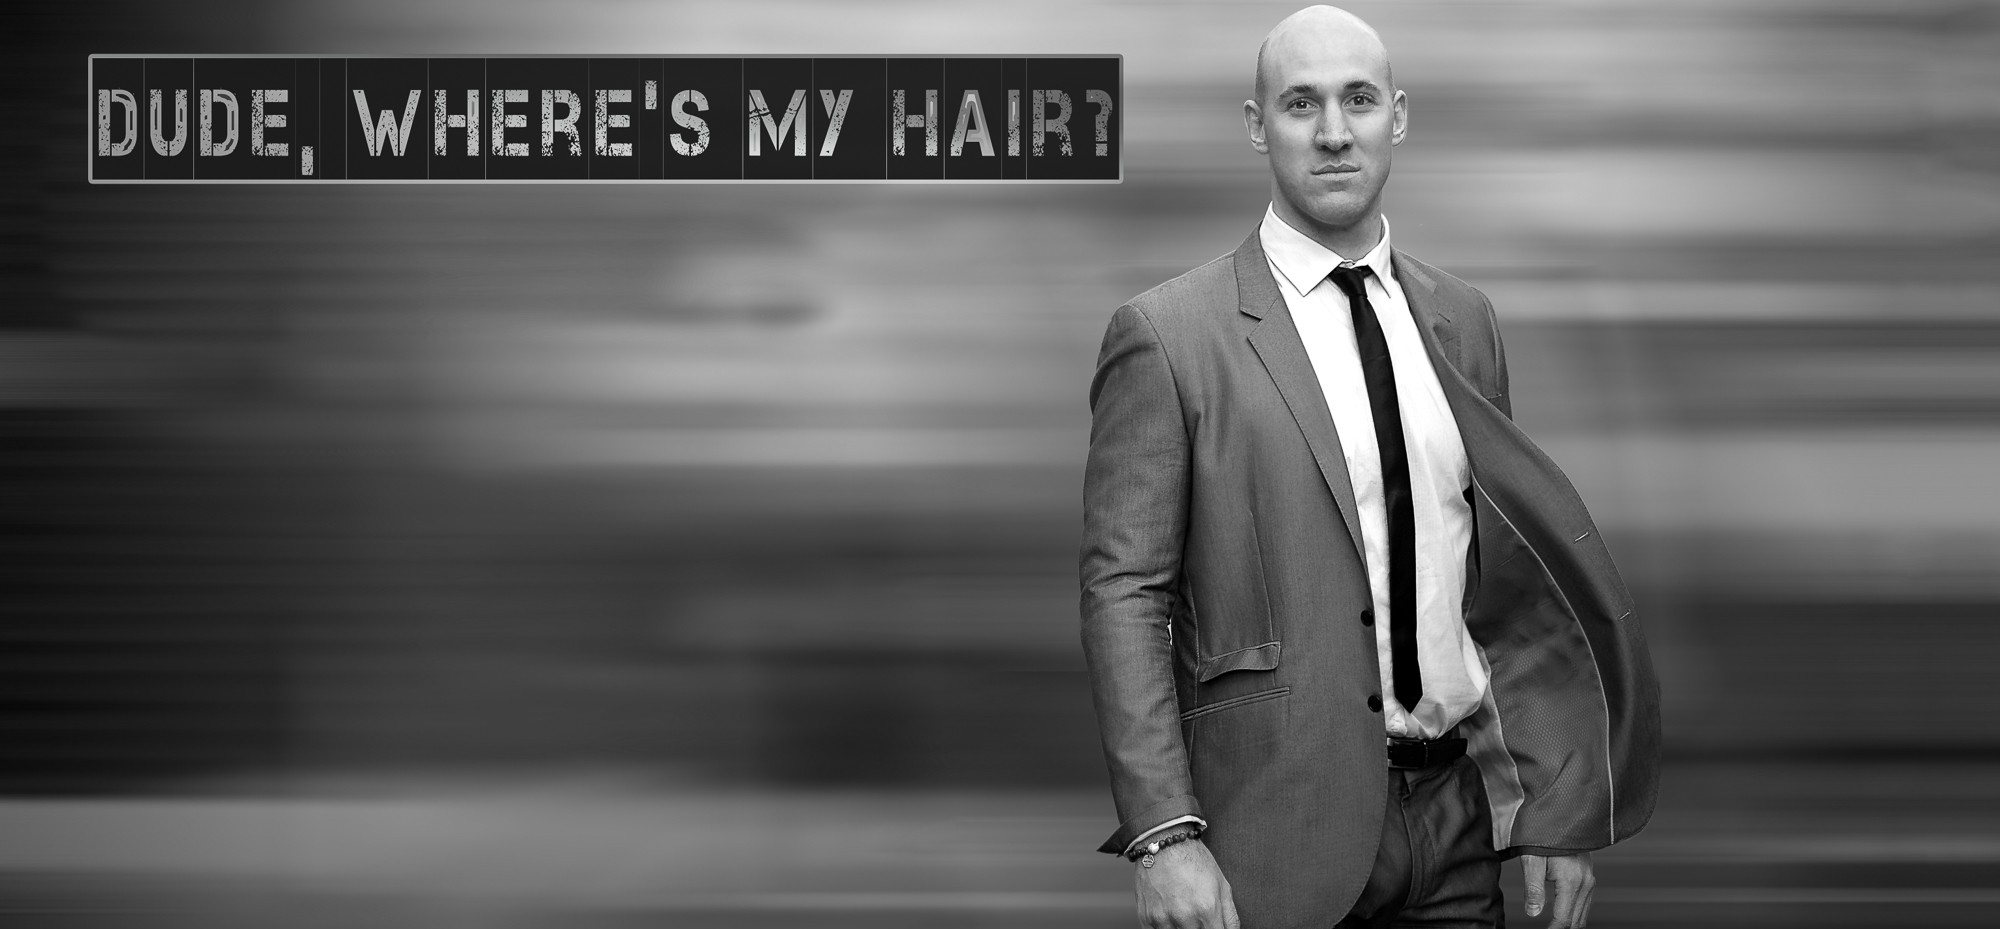 Hair Transplants Chandigarh 5 1 - Restore Hair Over The Bald Spots With FUE Hair Transplants